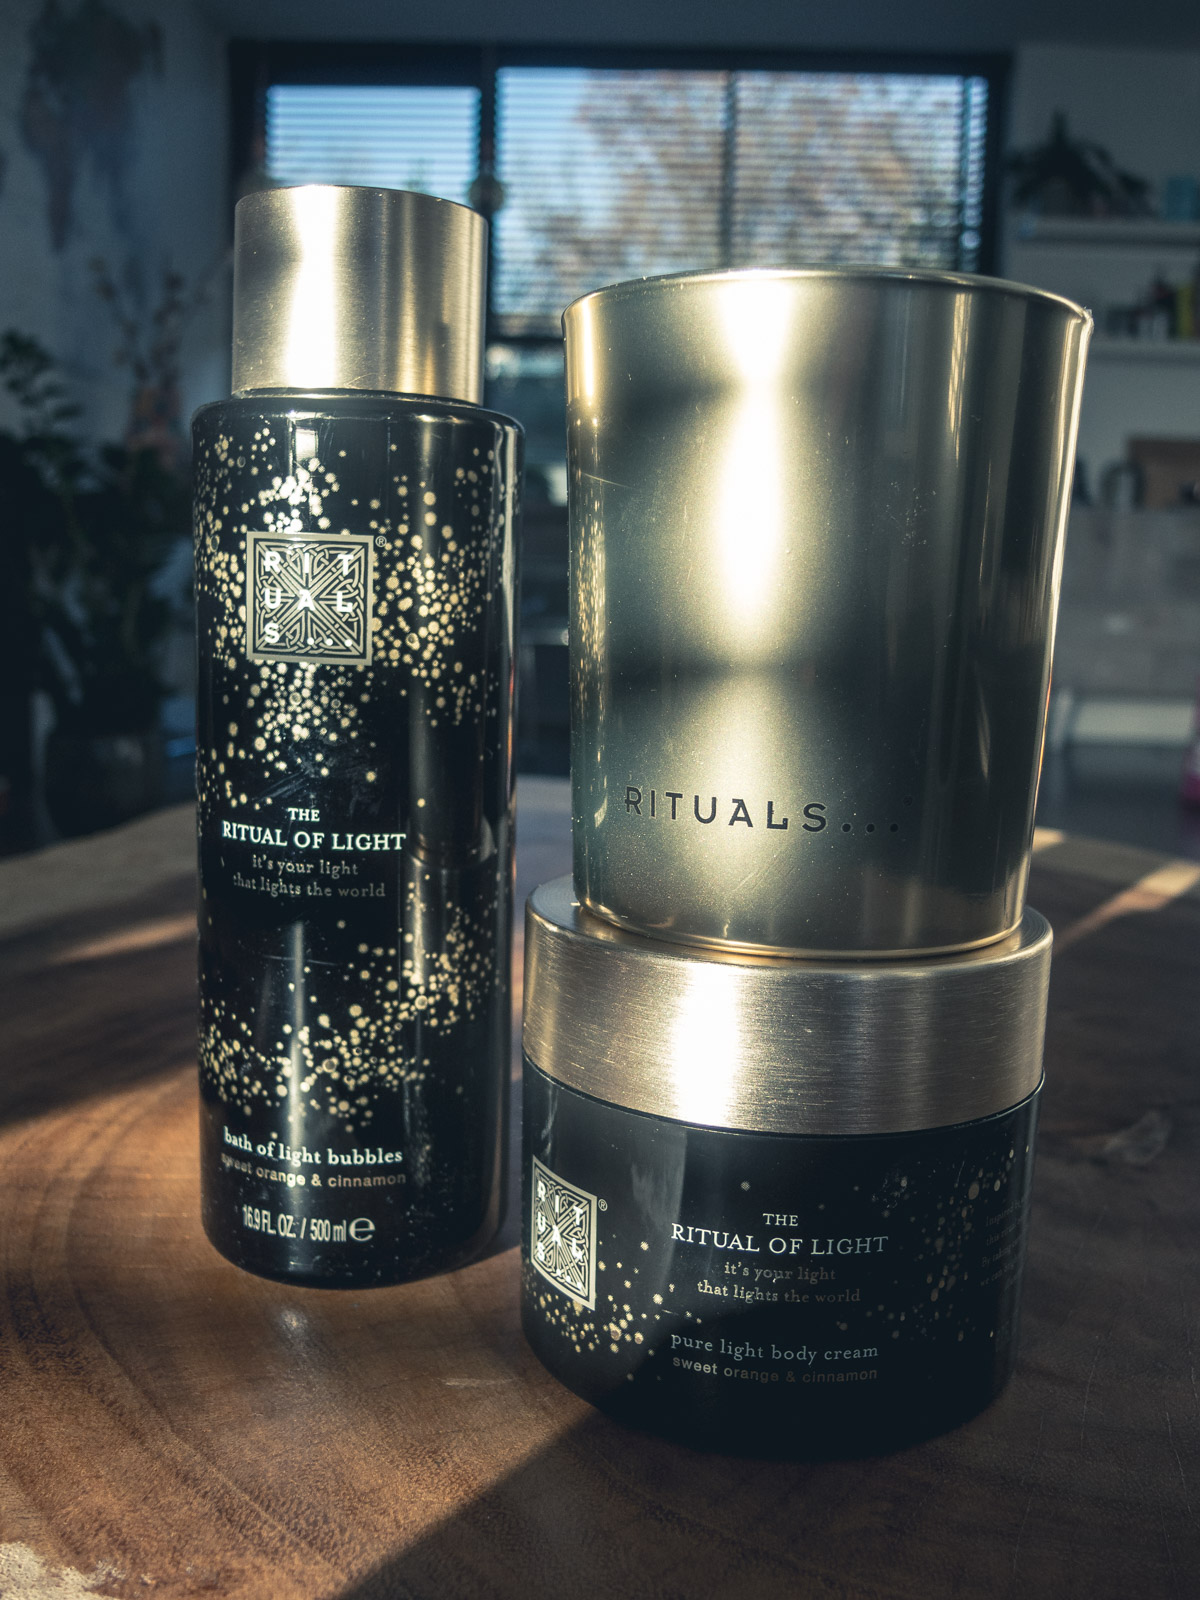 Geurstokjes Rituals Review The Ritual Of Light By Rituals Ladify